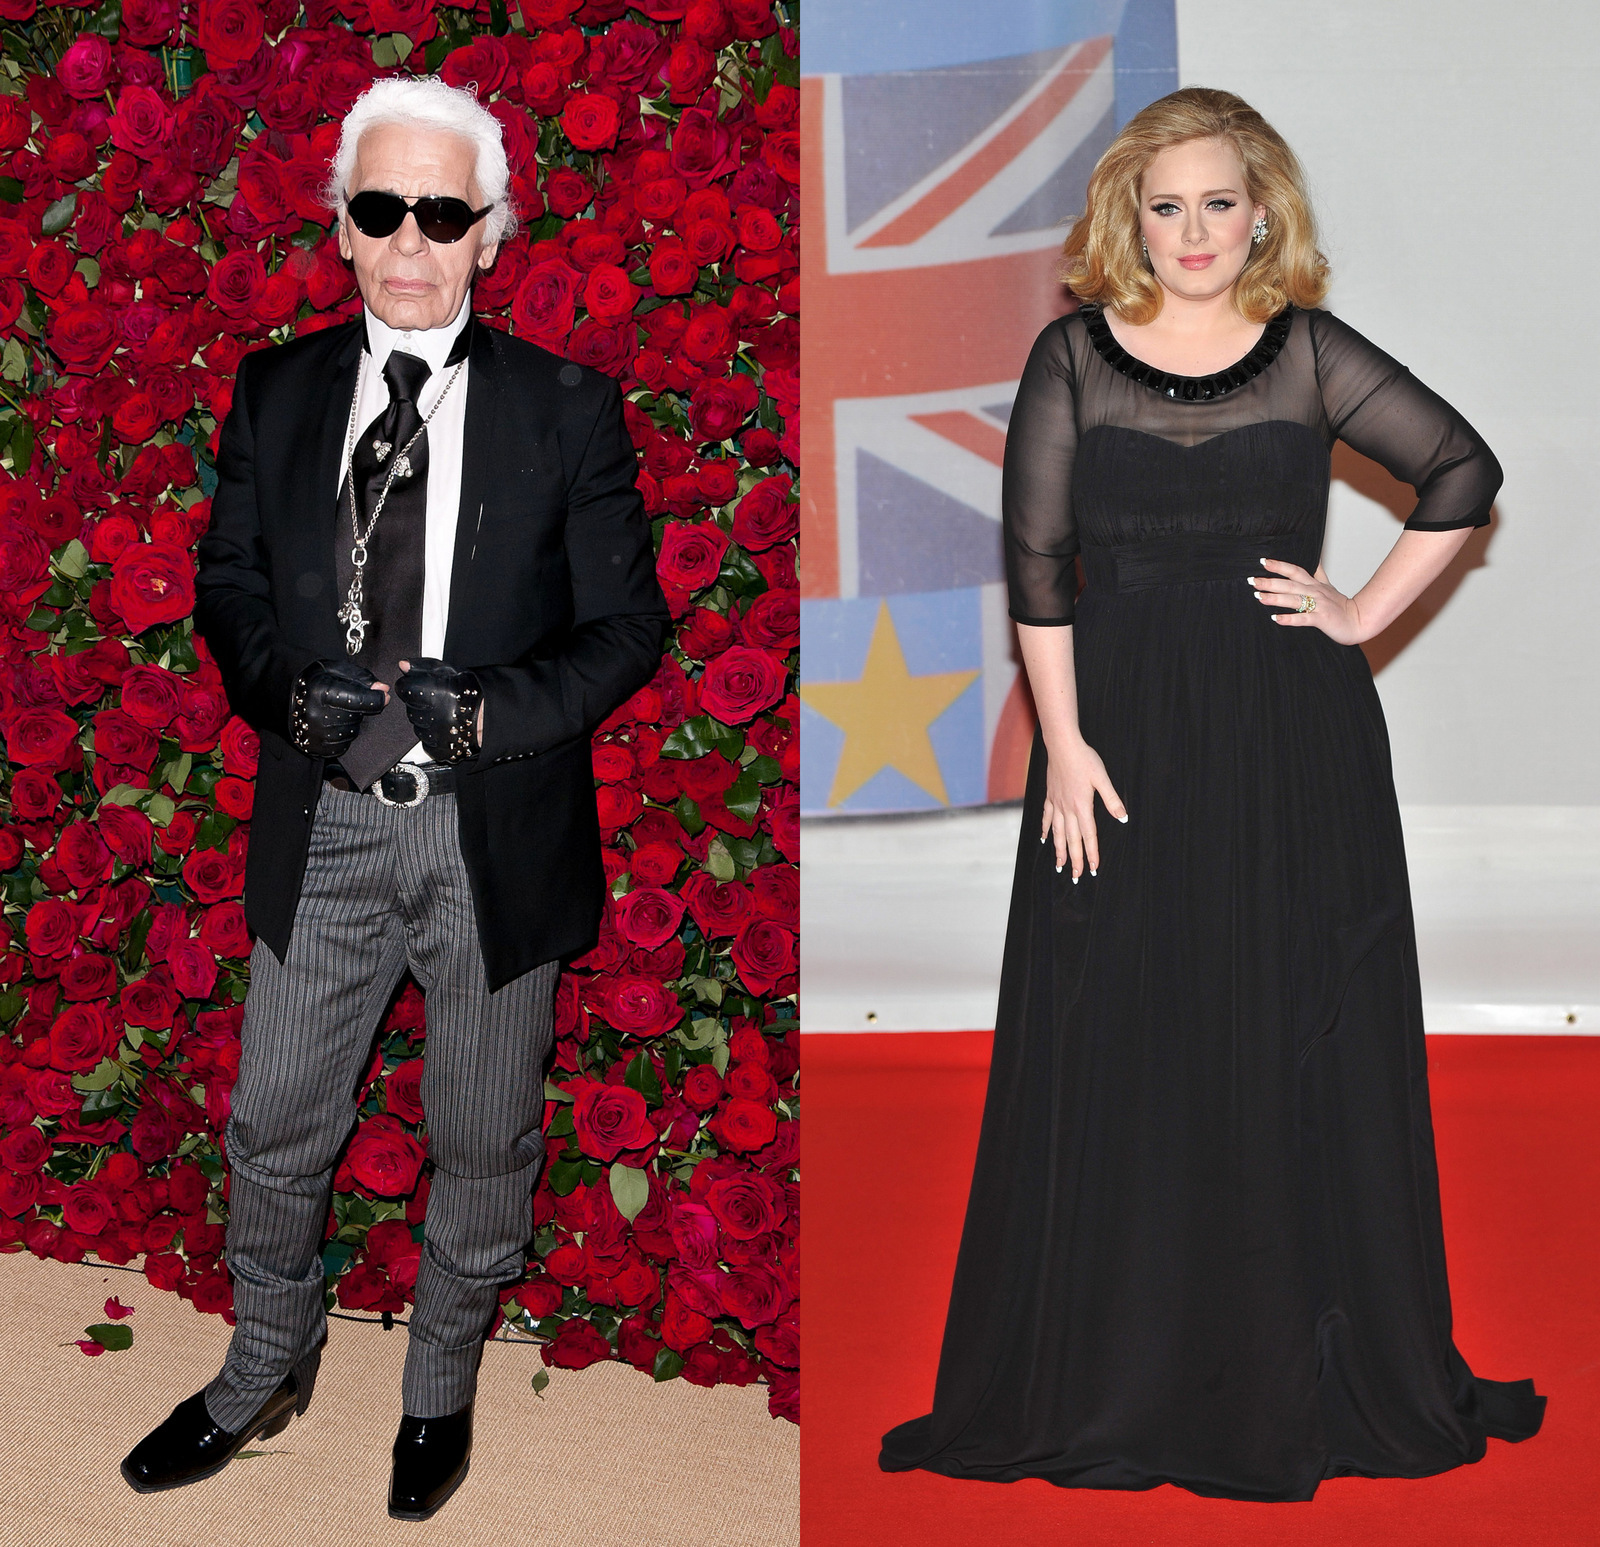 Adele and Karl Lagerfeld